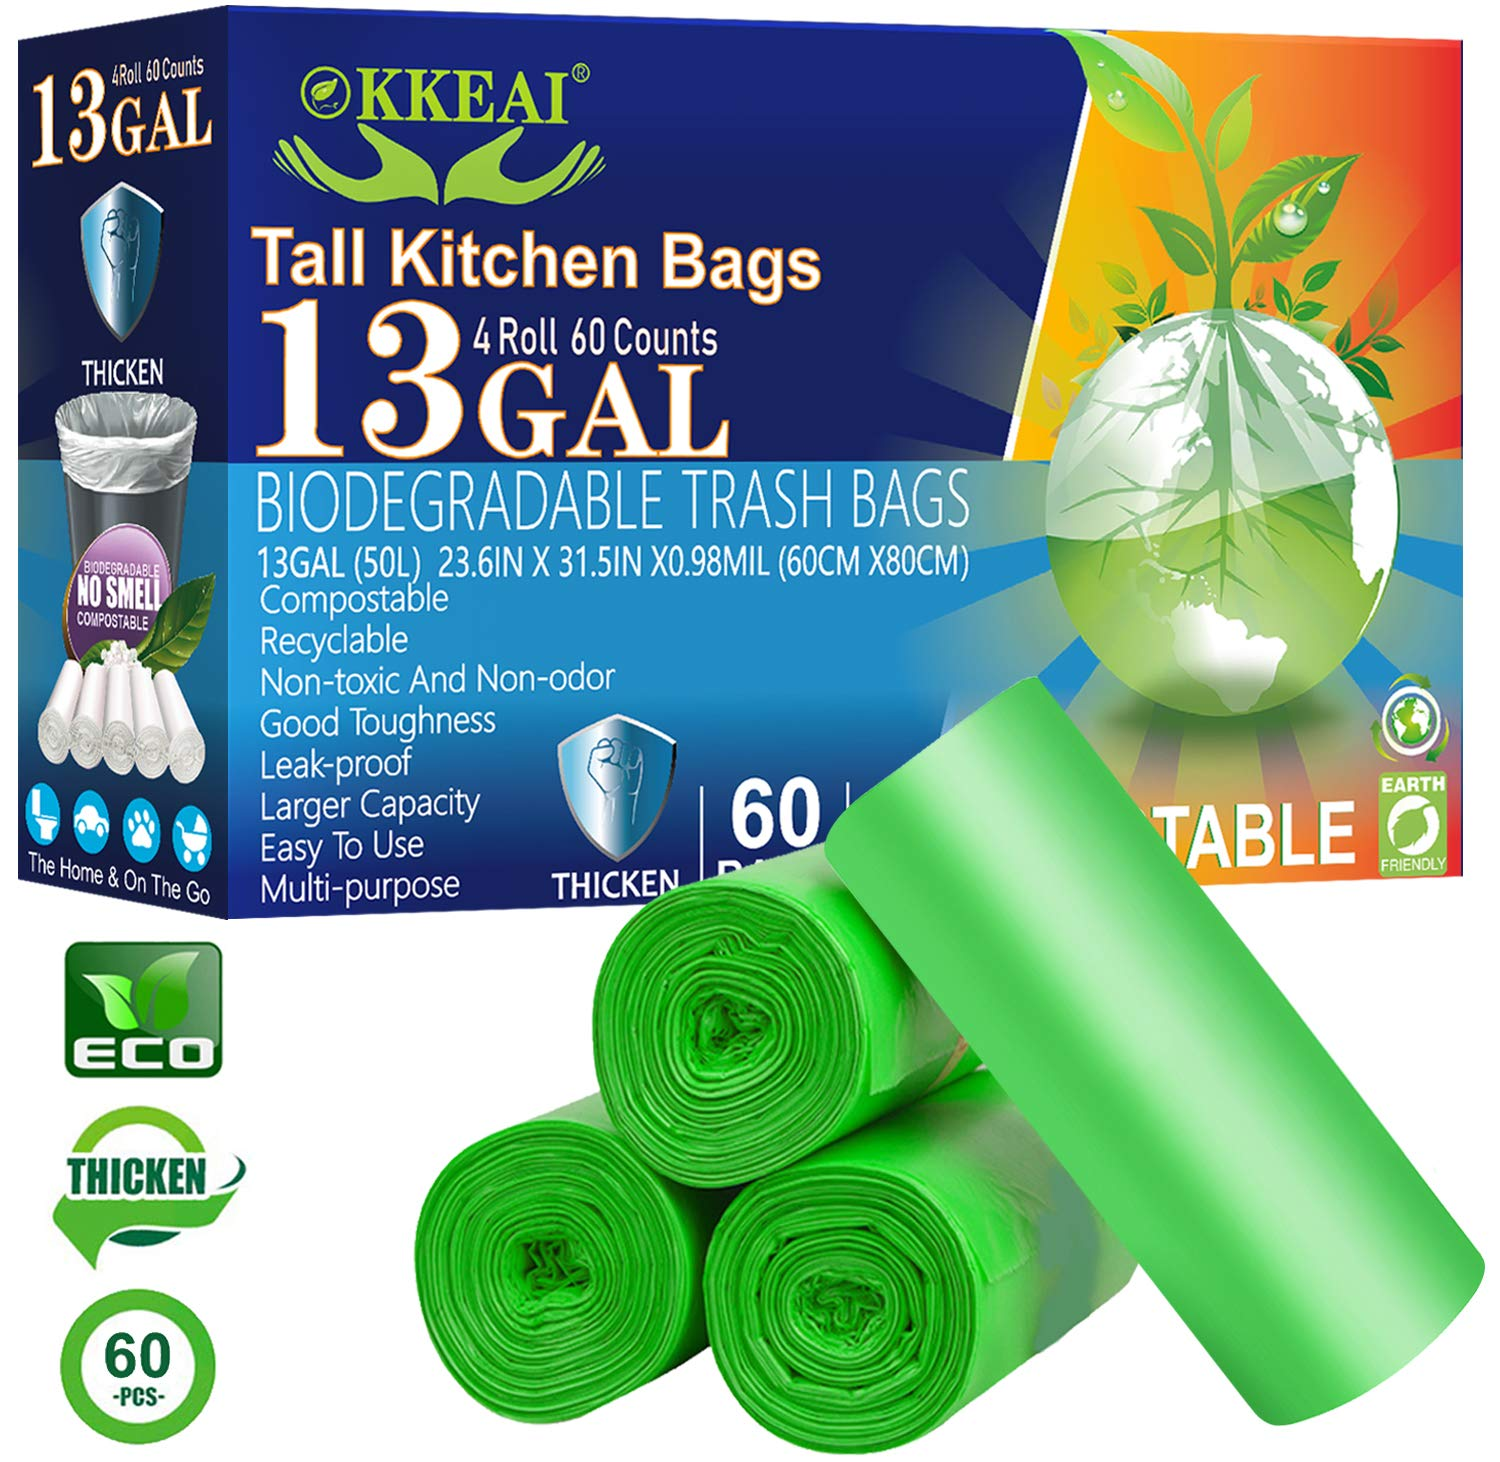 Biodegradable Trash Bags 13 Gallon/49.2 Liter,0.98 Mil Thicken Tall Kitchen Trash Bags Recycling for Lawn Kitchen,Home,Office,Green,60 Counts(Fits 10-15 Gallon Bins)